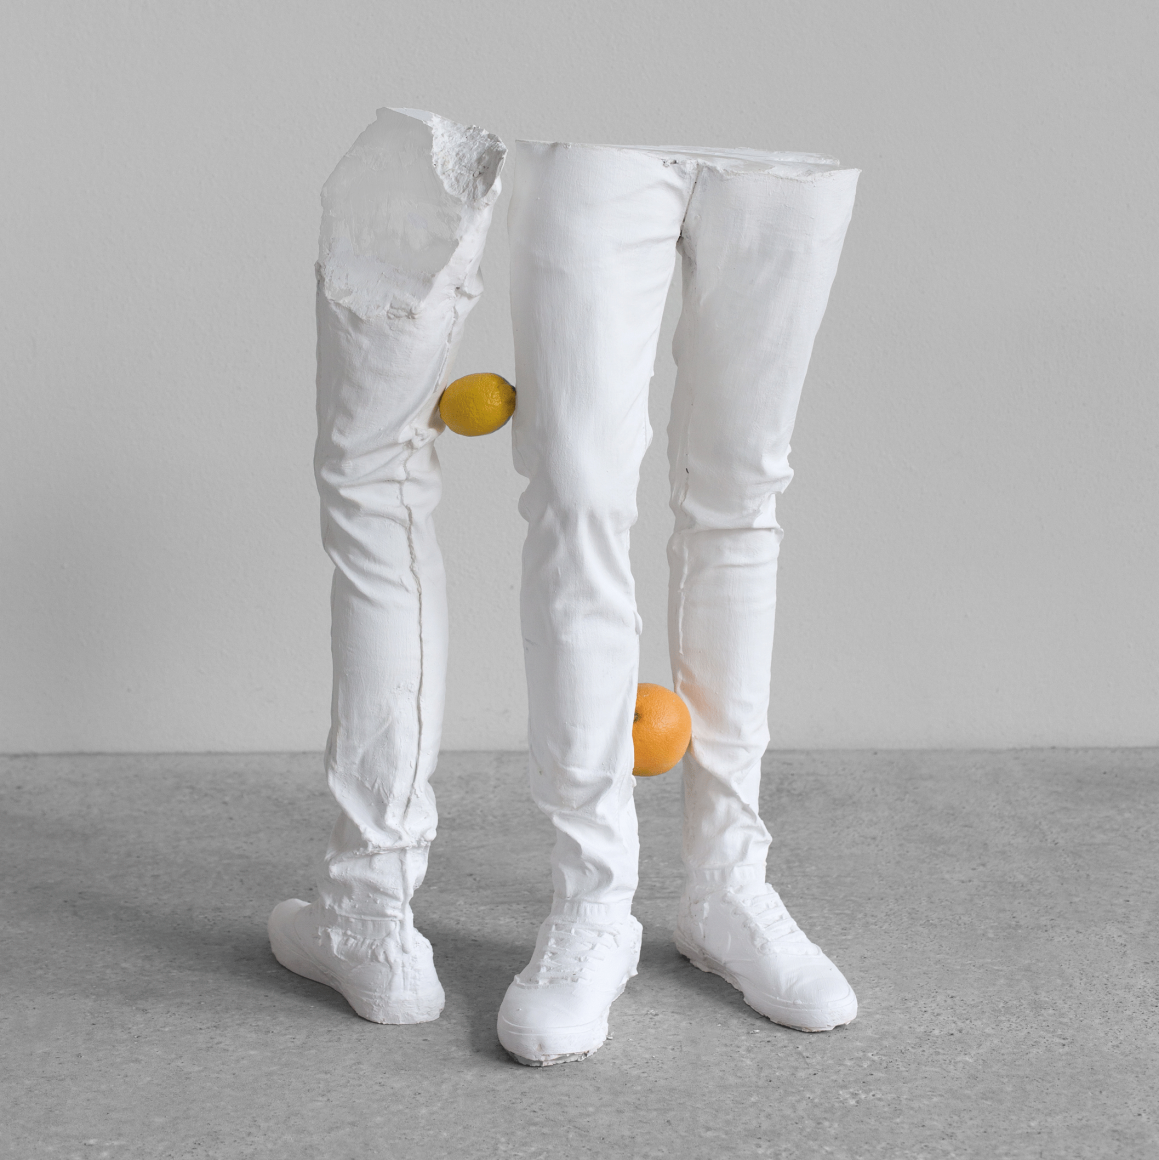 ERWIN WURM, Untitled (with fruits) (One Minute Forever), 2019